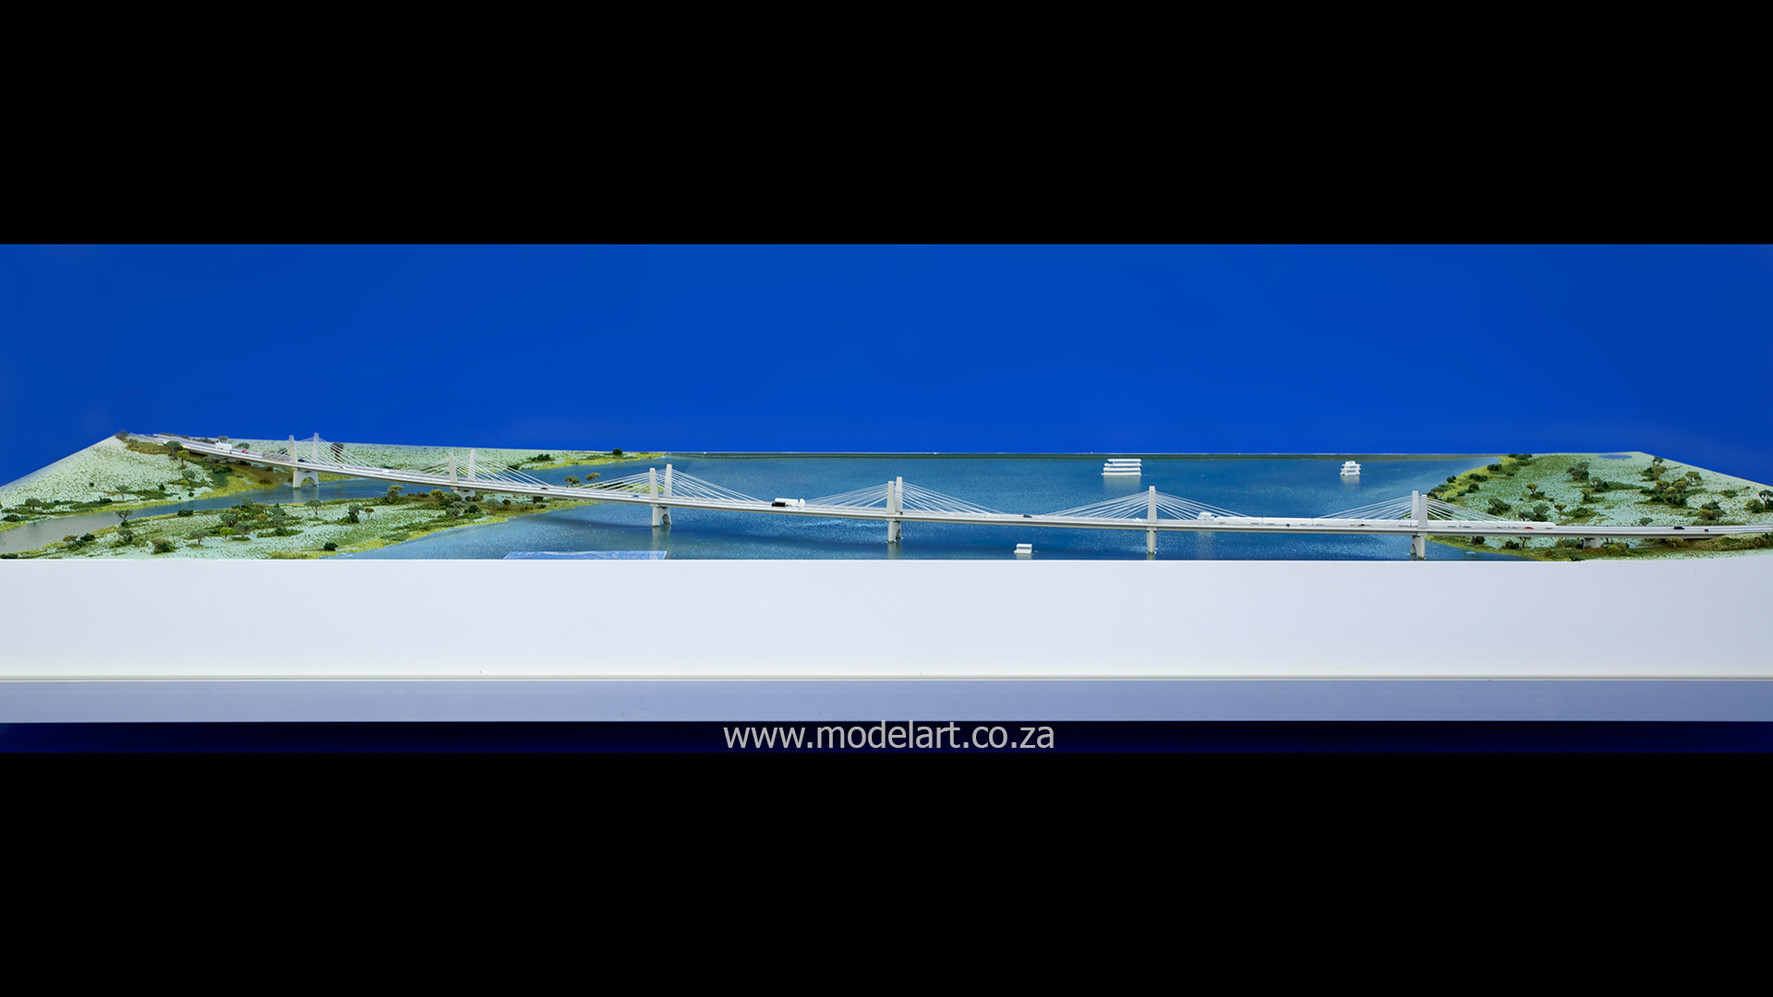 Architectural-Scale-Model-Engineering-Kazangula Bridge-3